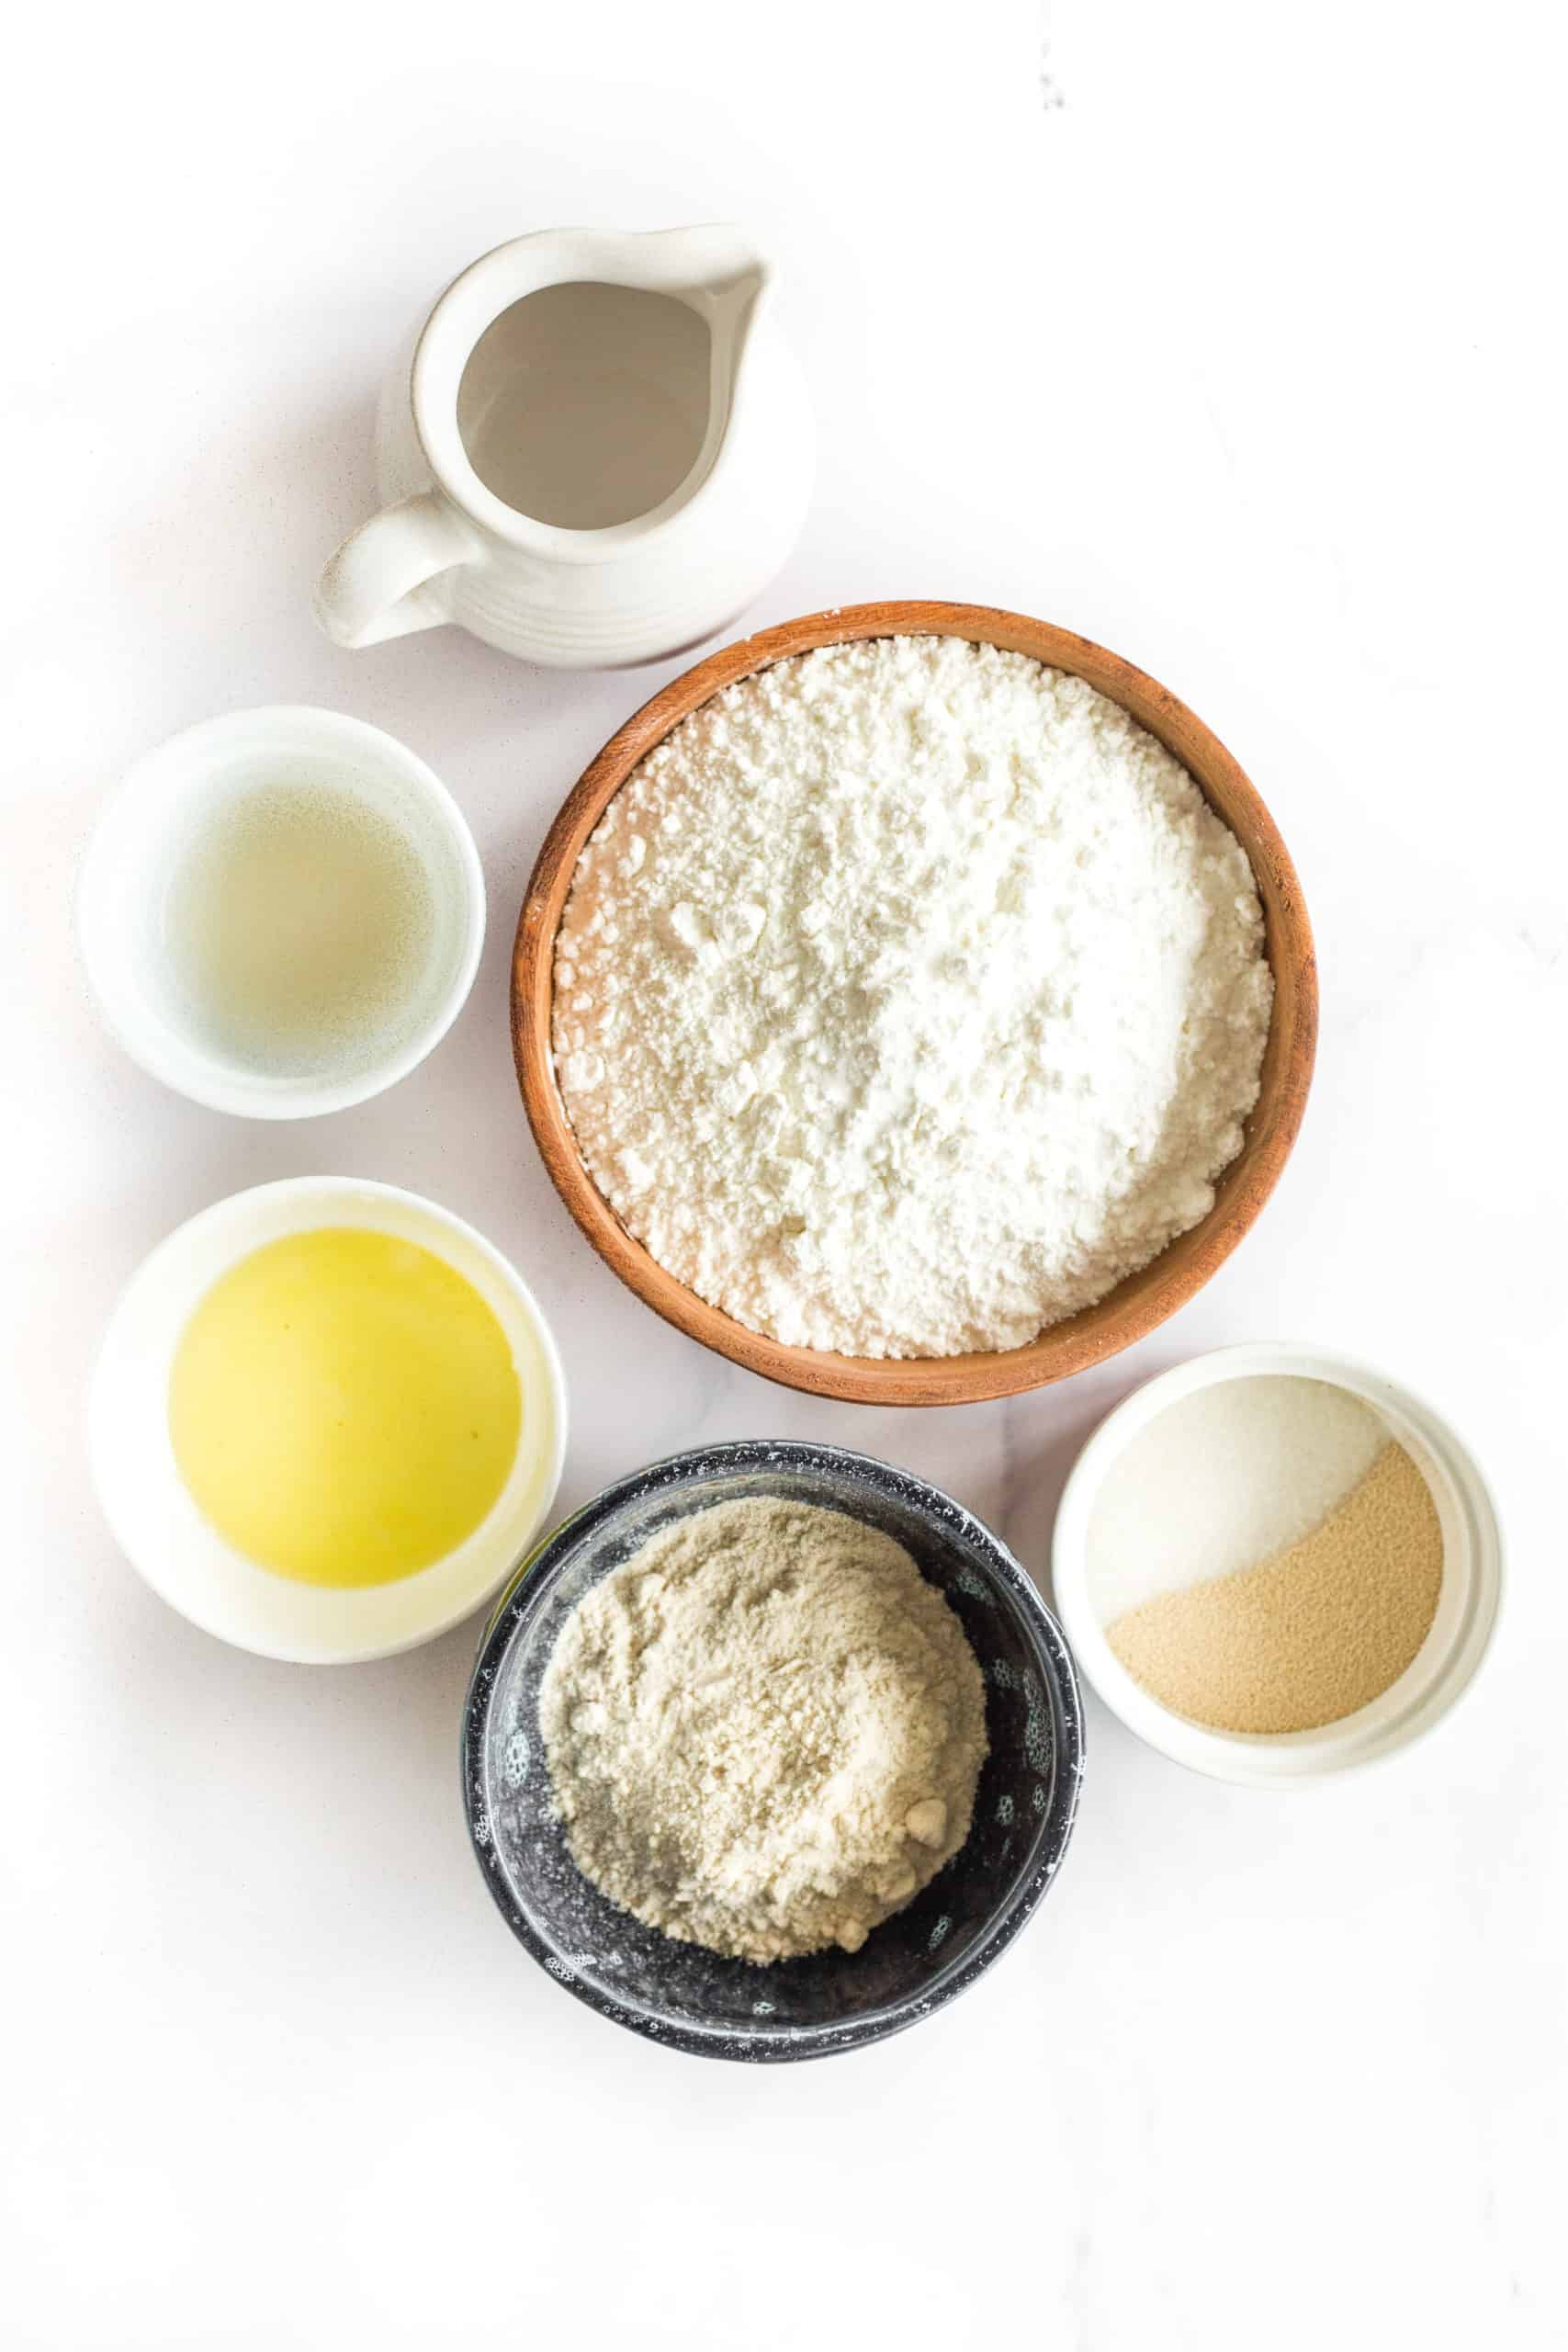 Ingredients for gluten-free and dairy-free pizza crust